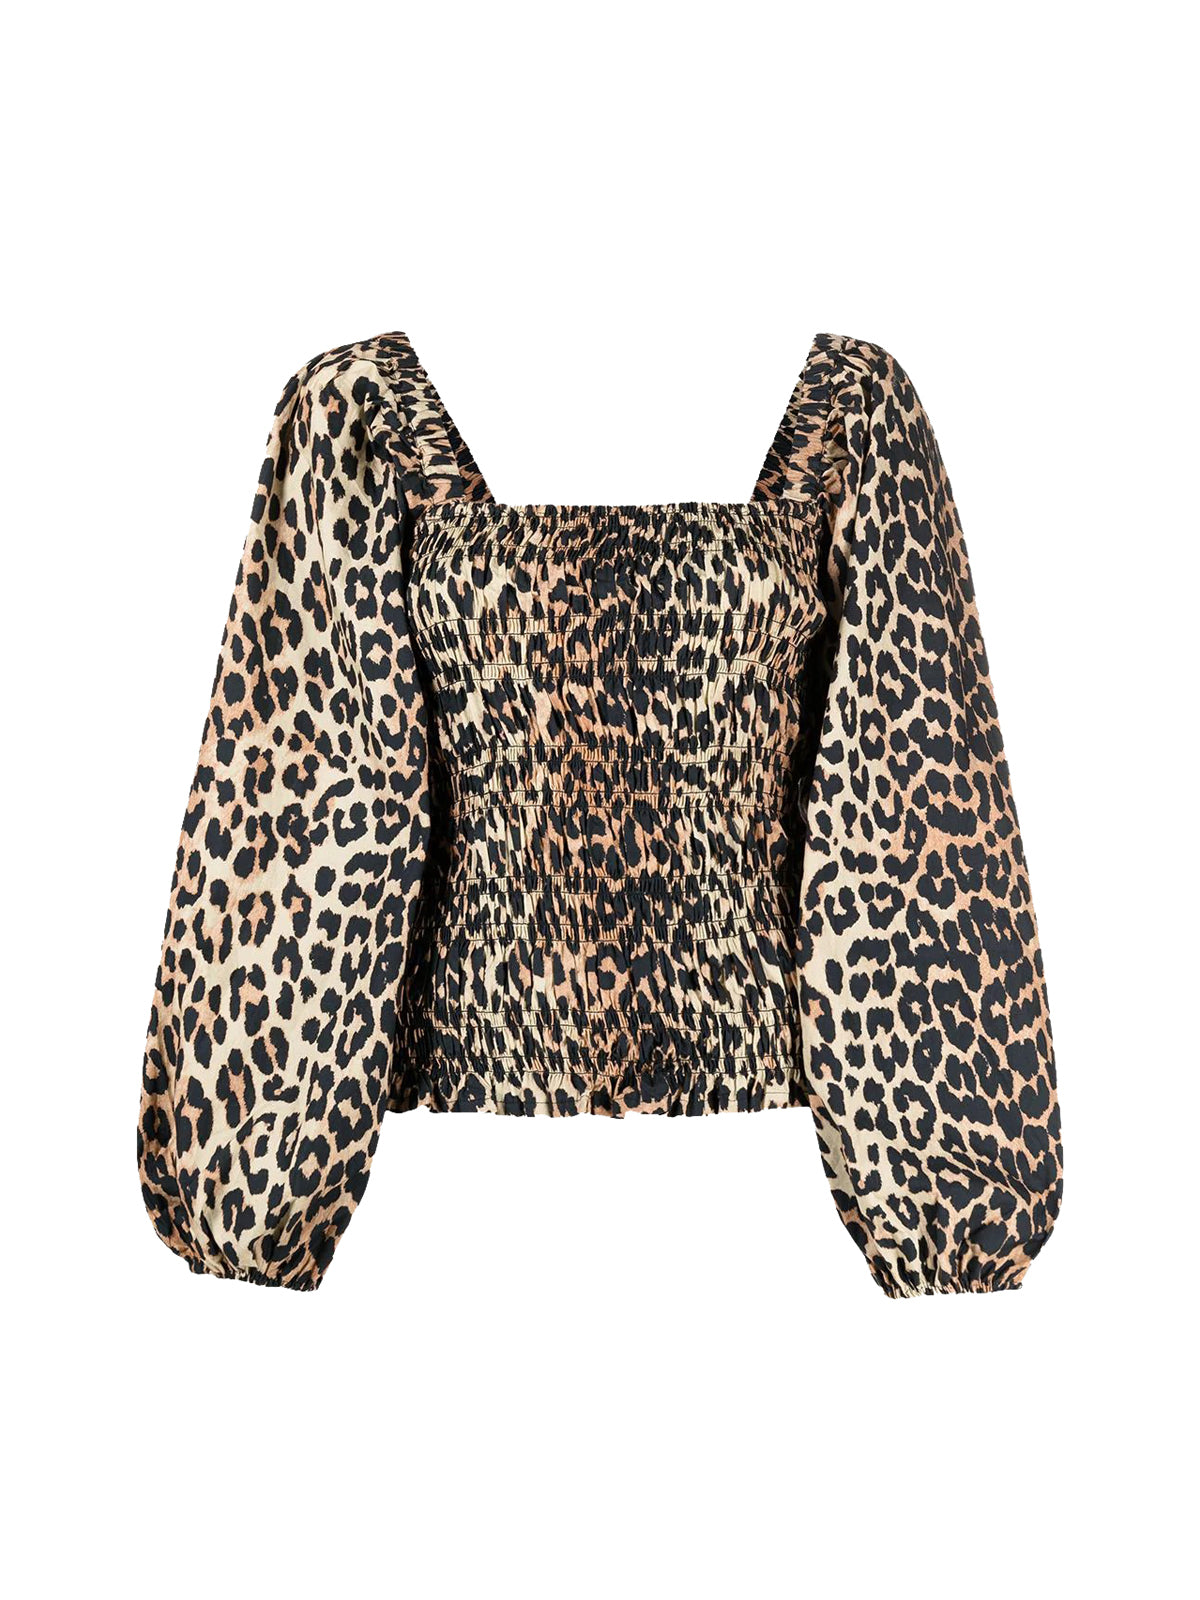 leopard-print balloon-sleeve blouse